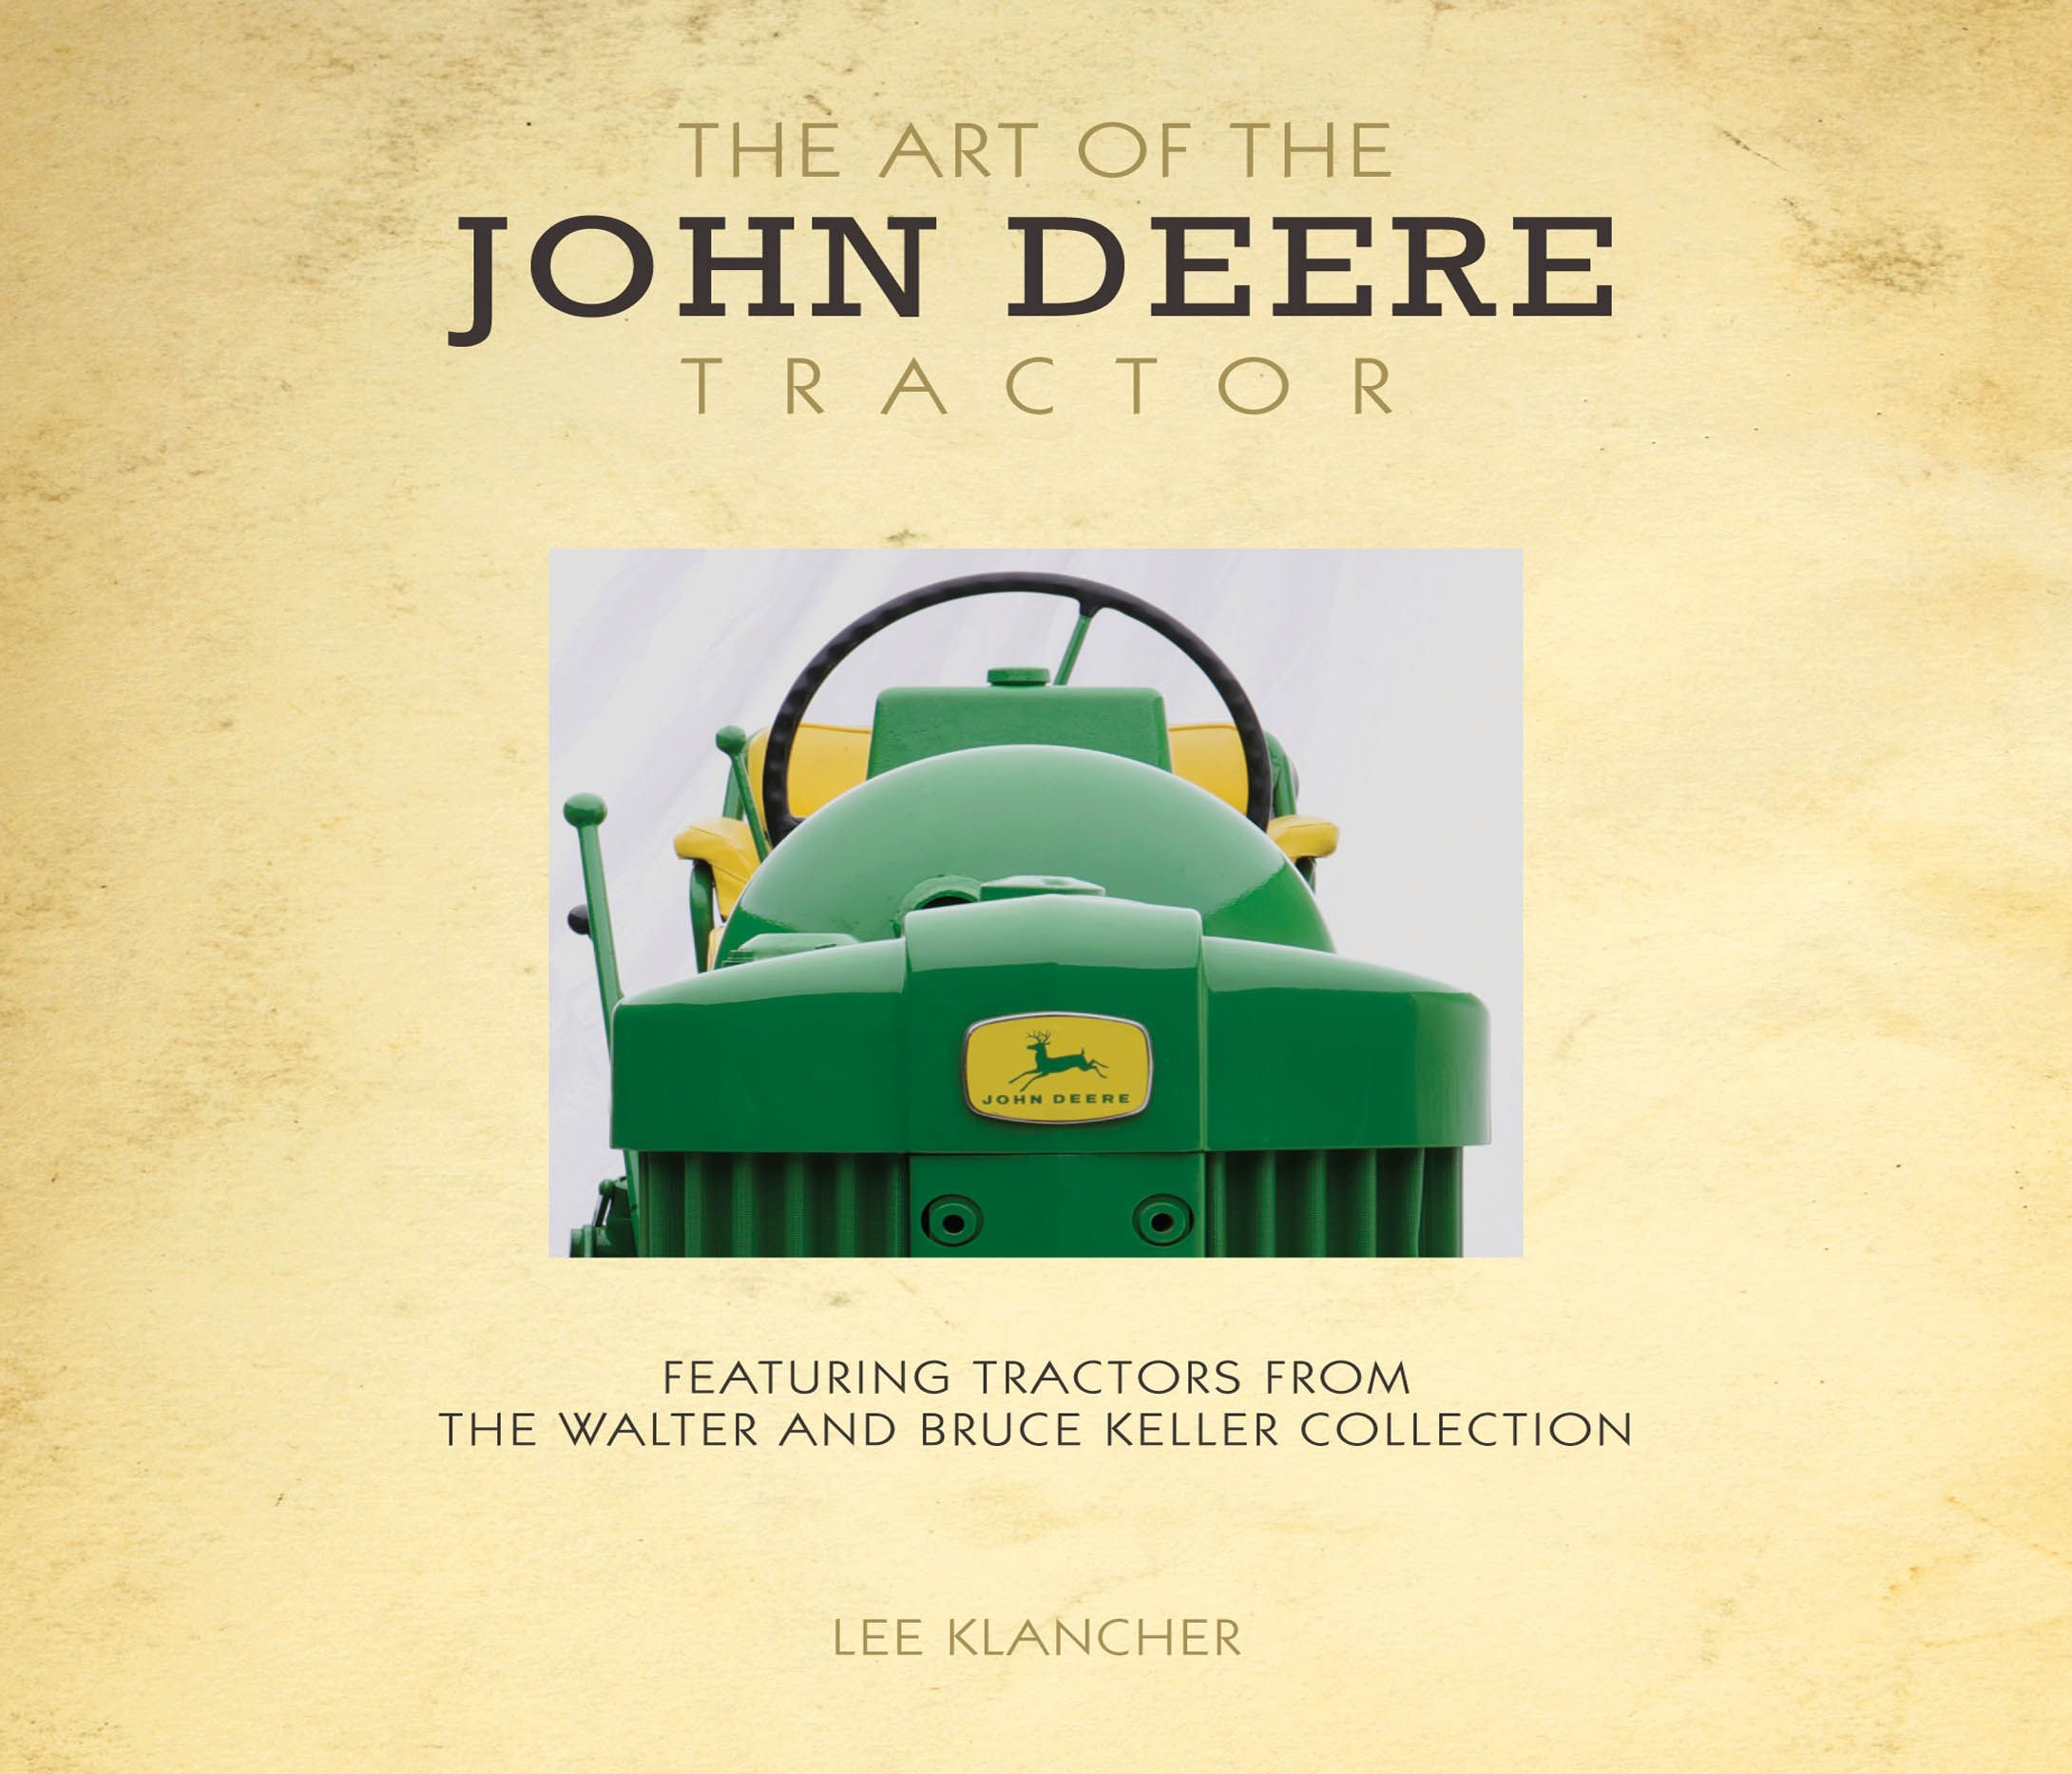 The Art of the John Deere Tractor: Featuring Tractors from the Walter and Bruce Keller Collection By: Lee Klancher